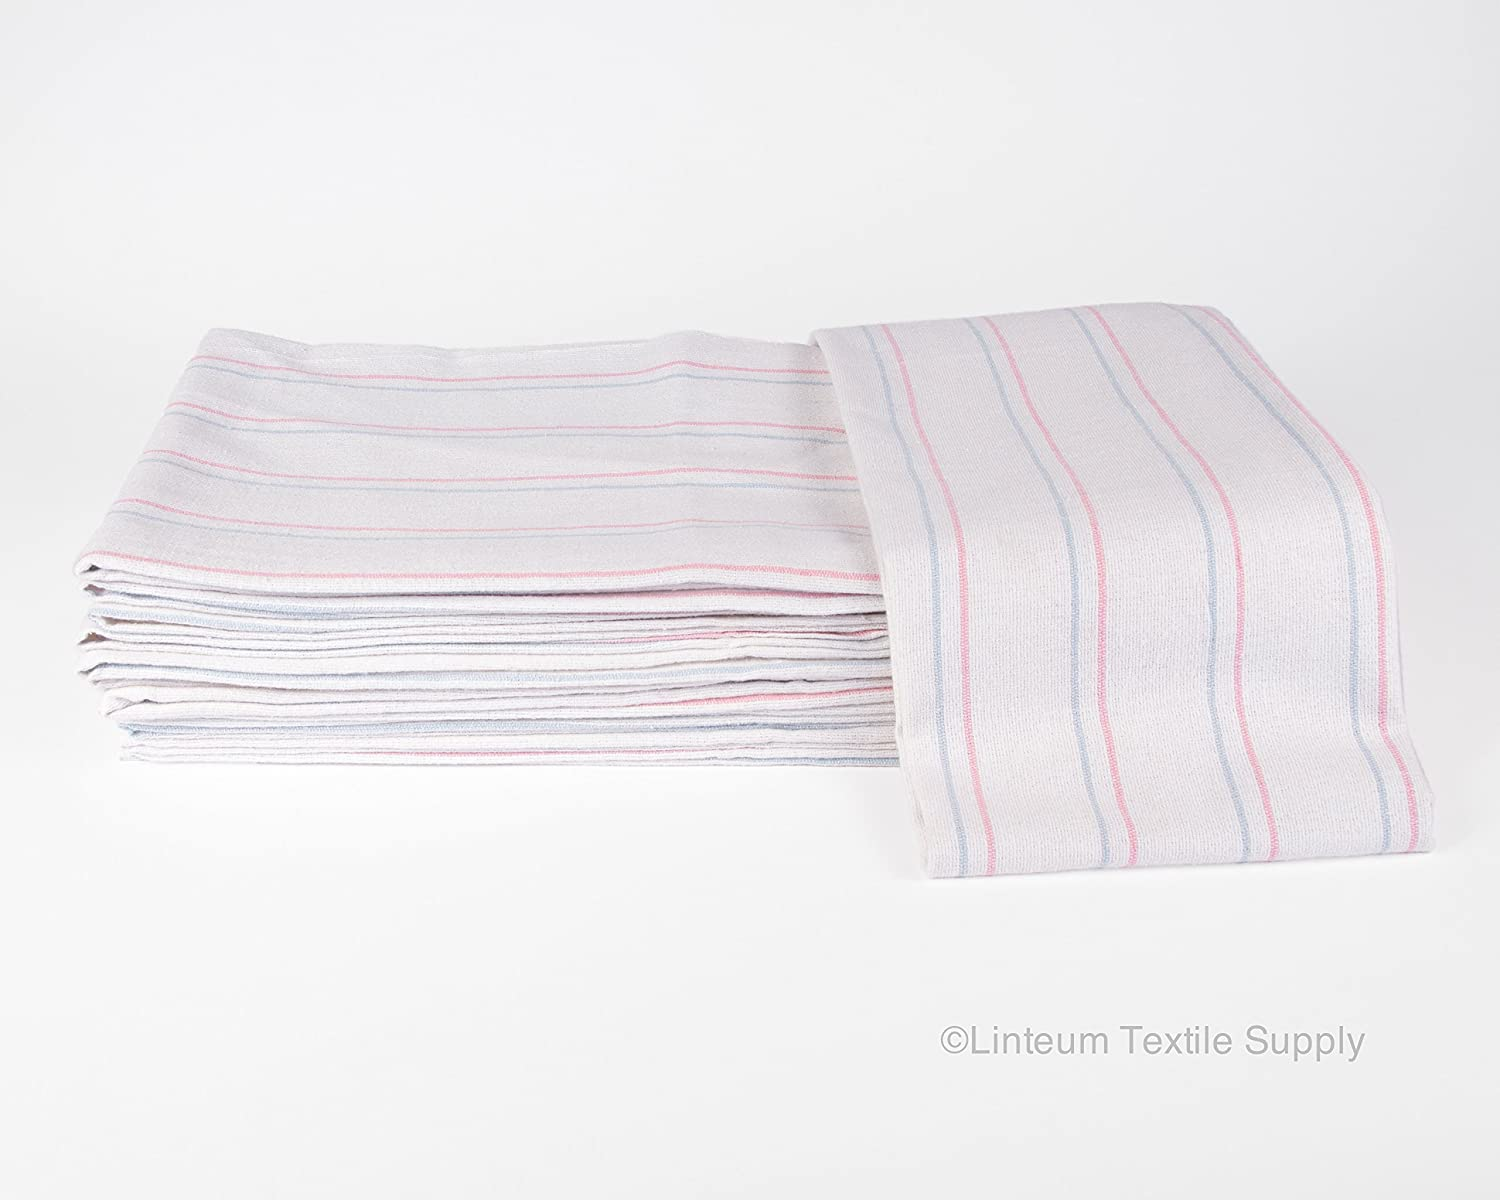 Linteum Textile Receiving HOSPITAL BABY BLANKETS 36x36 in. 12-Pack Linteum Textile Supply LT3636BABY